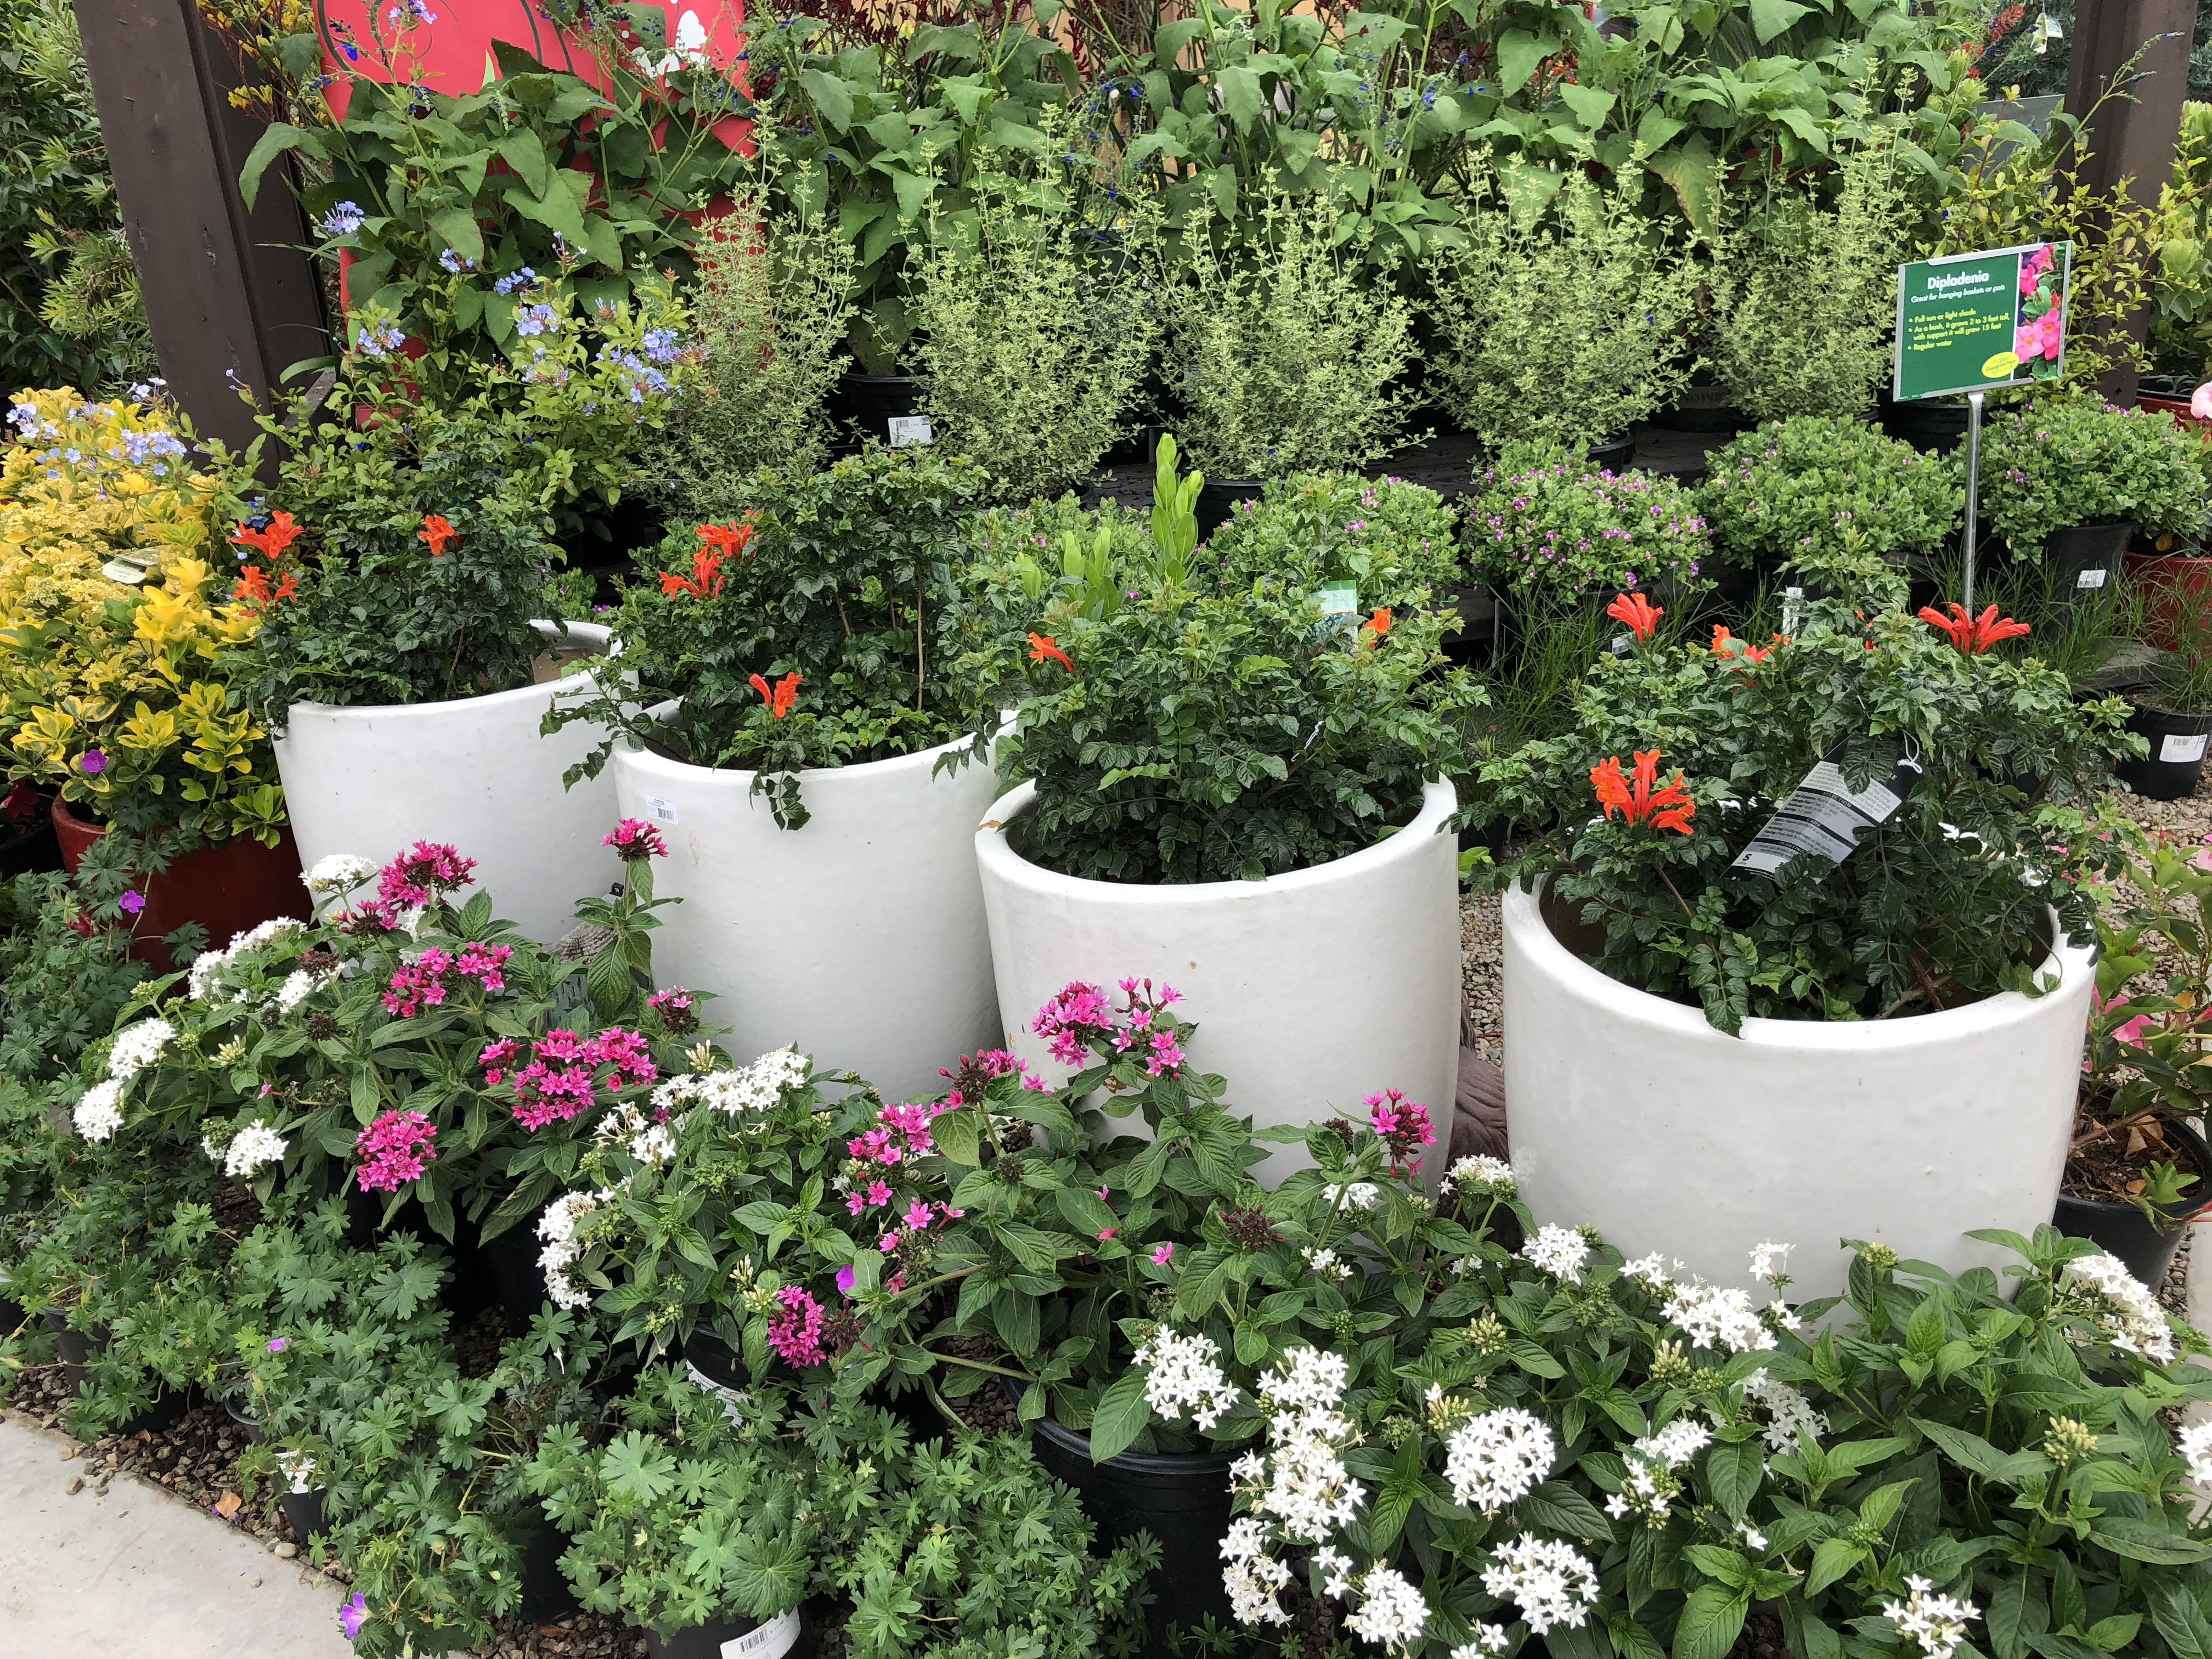 Armstrong's Garden Centers Newport Beach Potted Flowers and Shrubs